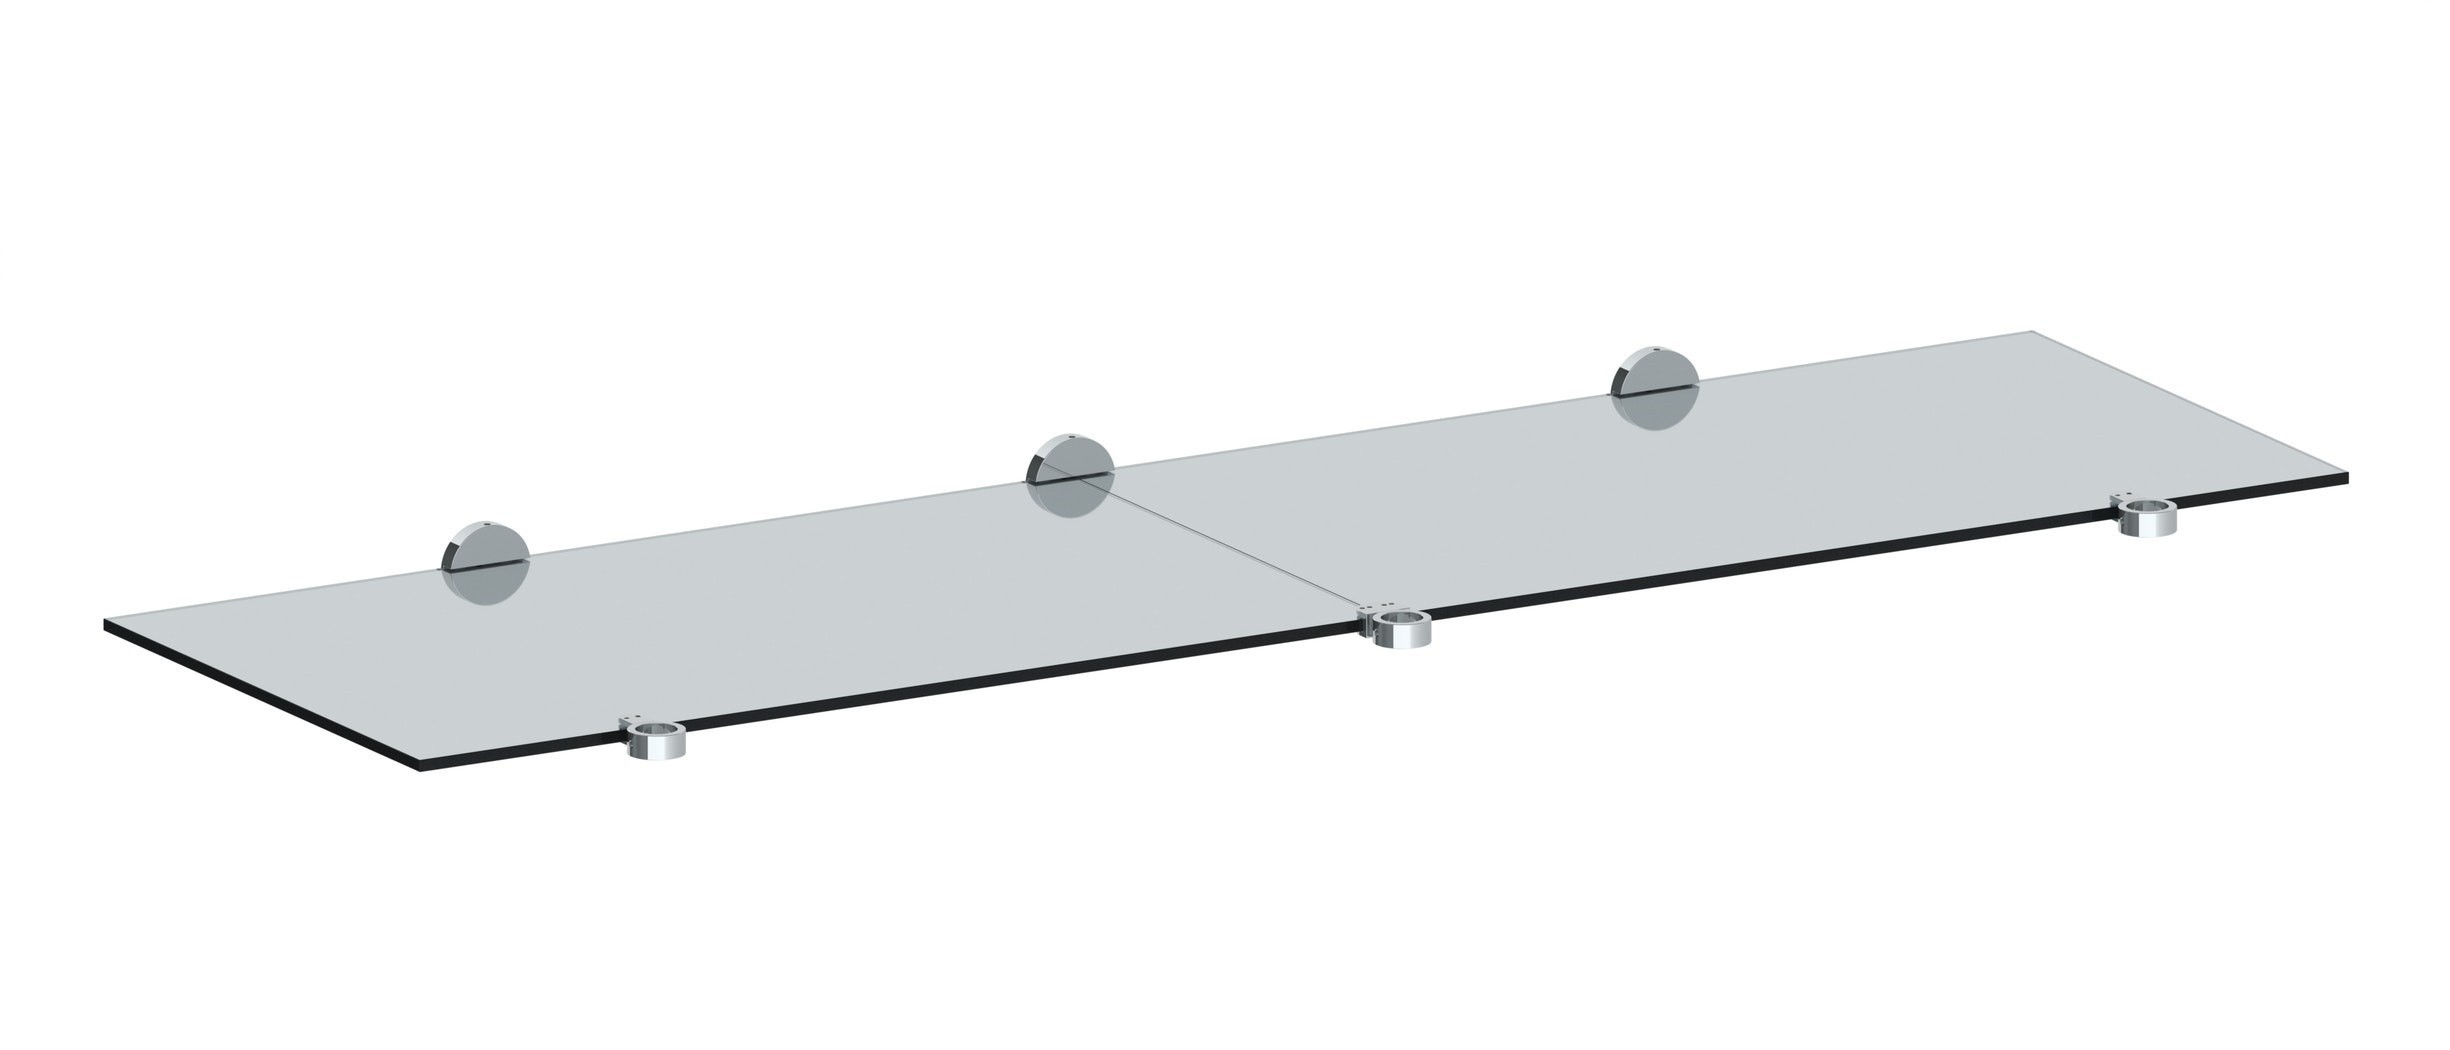 WATERMARK CON72-SUT-0.8 SUTTON 63 INCH WALL MOUNT TEMPERED GLASS SHELF FOR 72 INCH DOUBLE CONSOLE